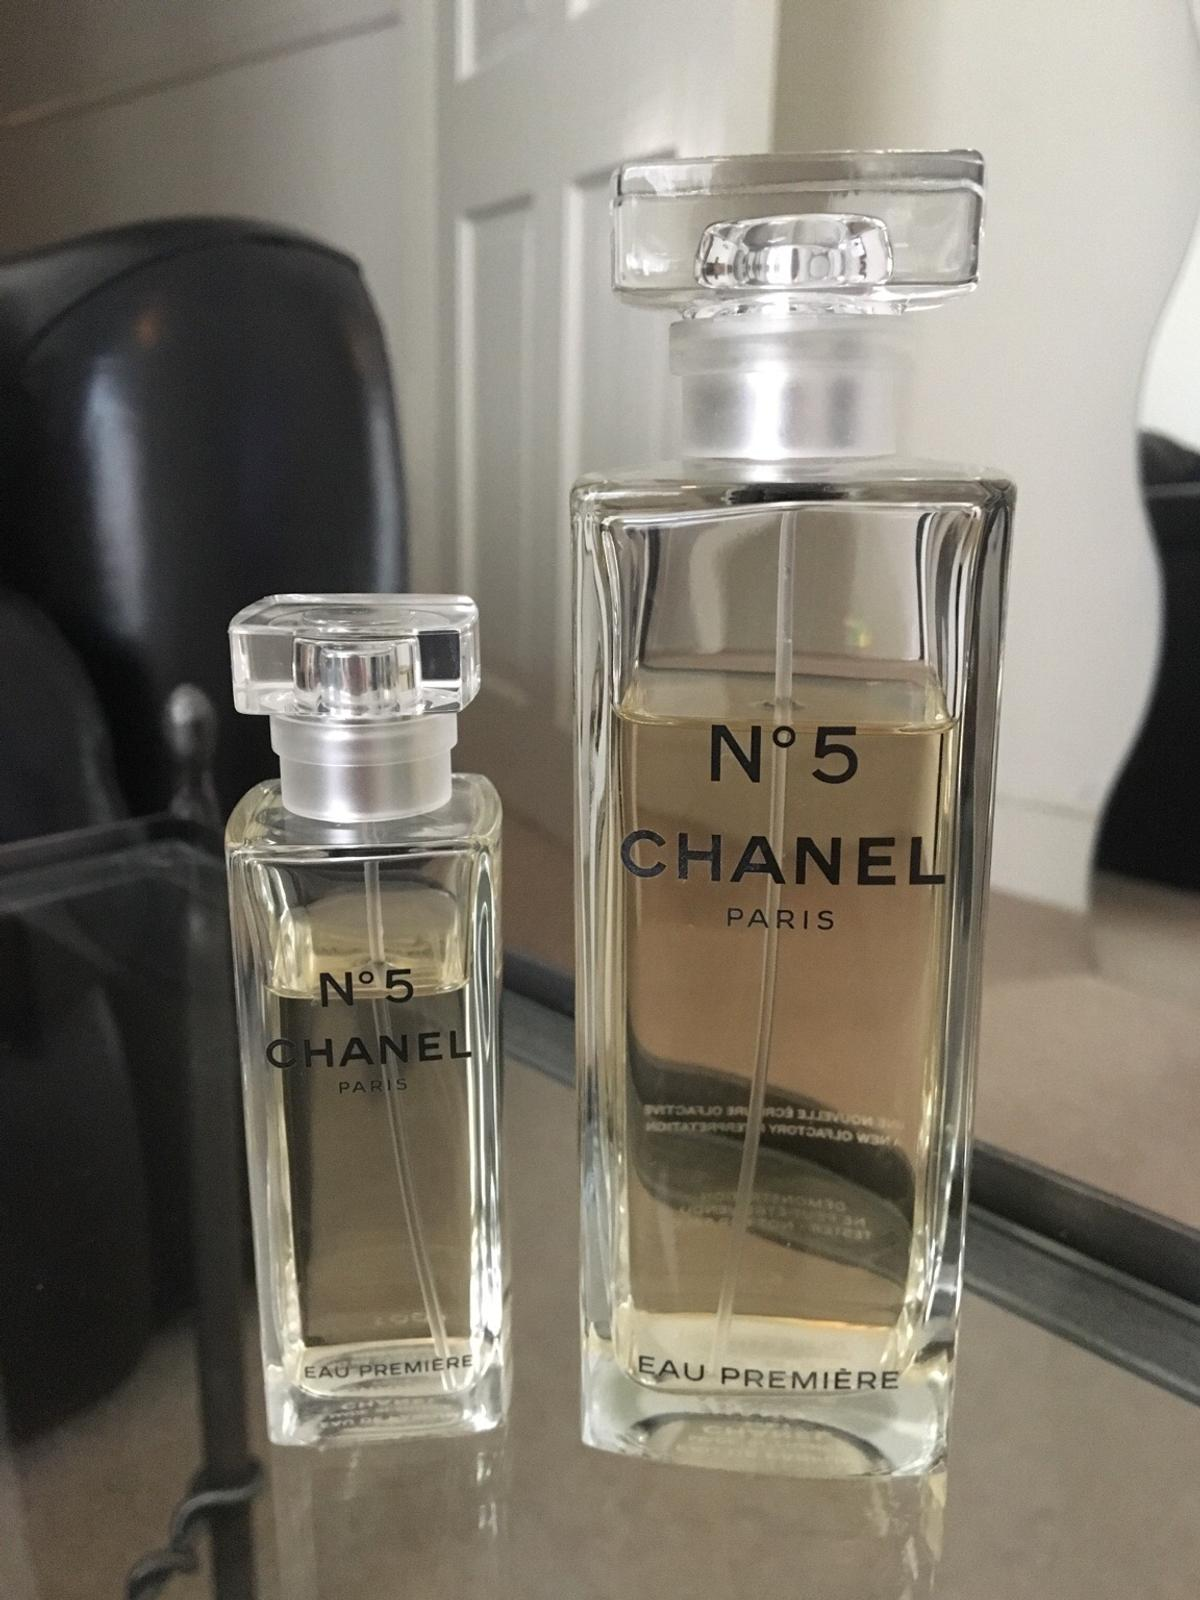 Chanel No5 Eau Premiere Parfum 150ml 40ml In Sw19 London For